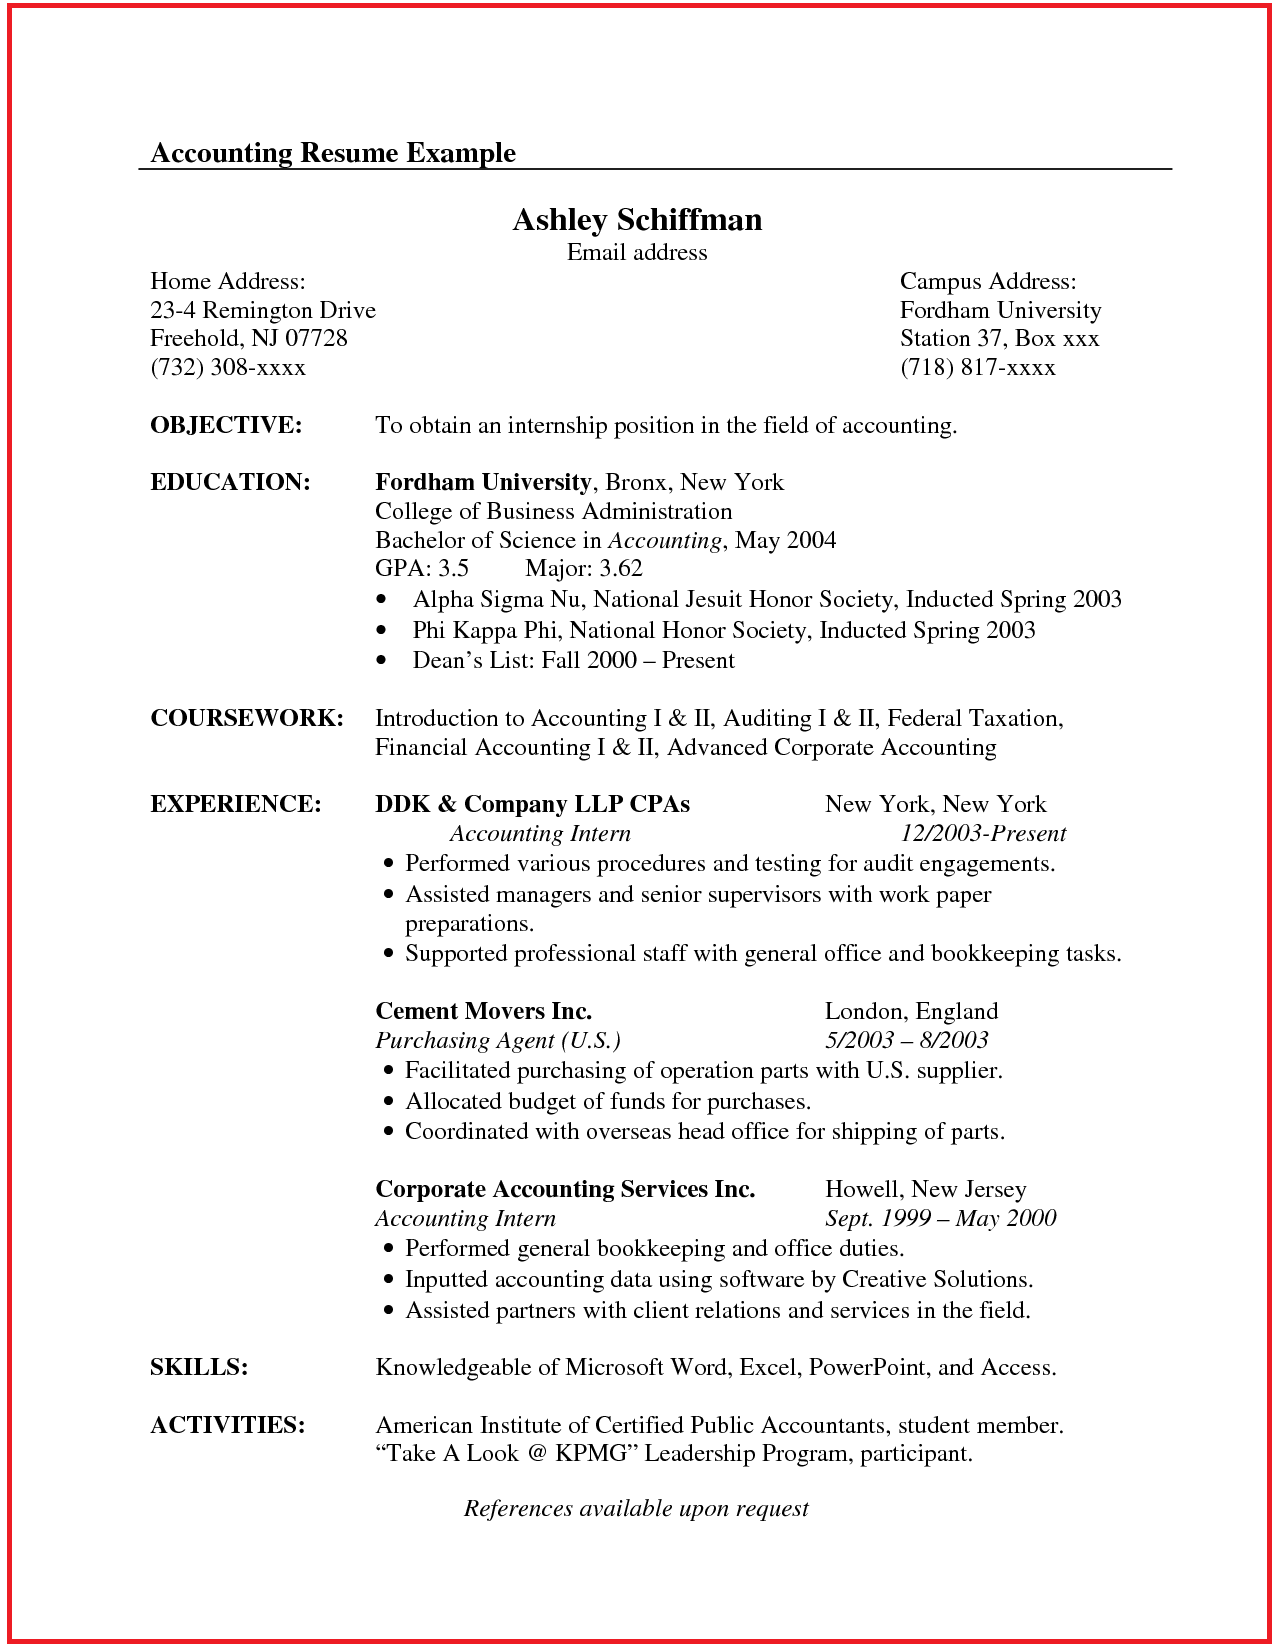 Email Resume Template Accountant Resume Sample Canada  Httpwwwjobresumewebsite